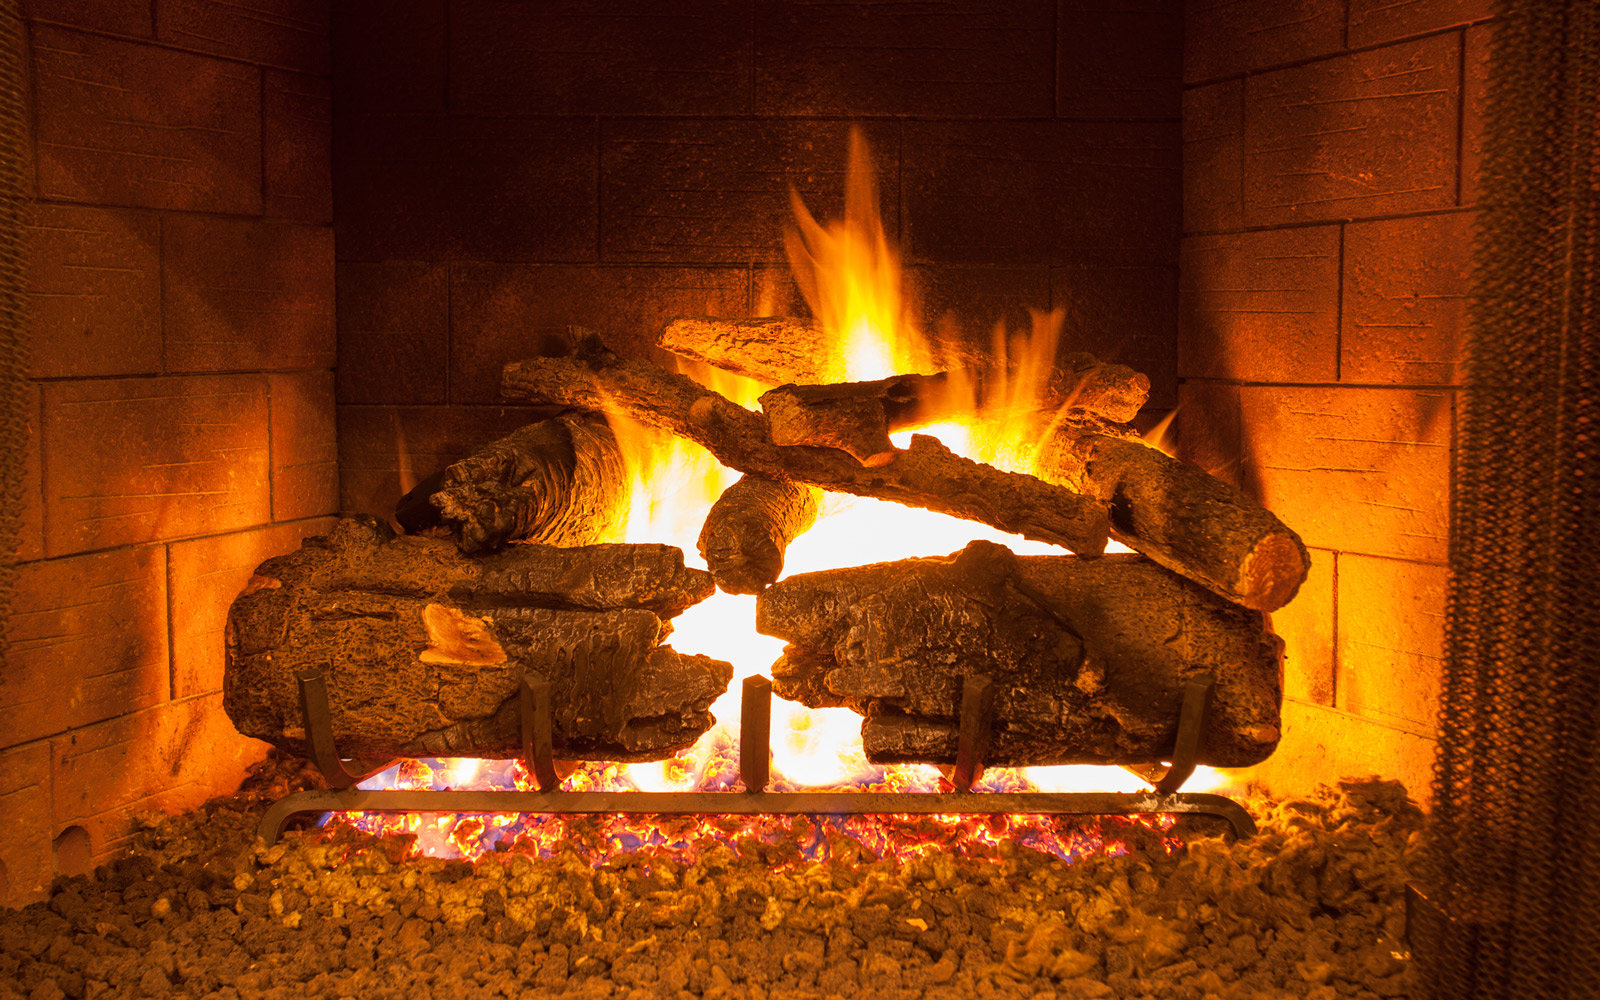 Log fire in a fire place.